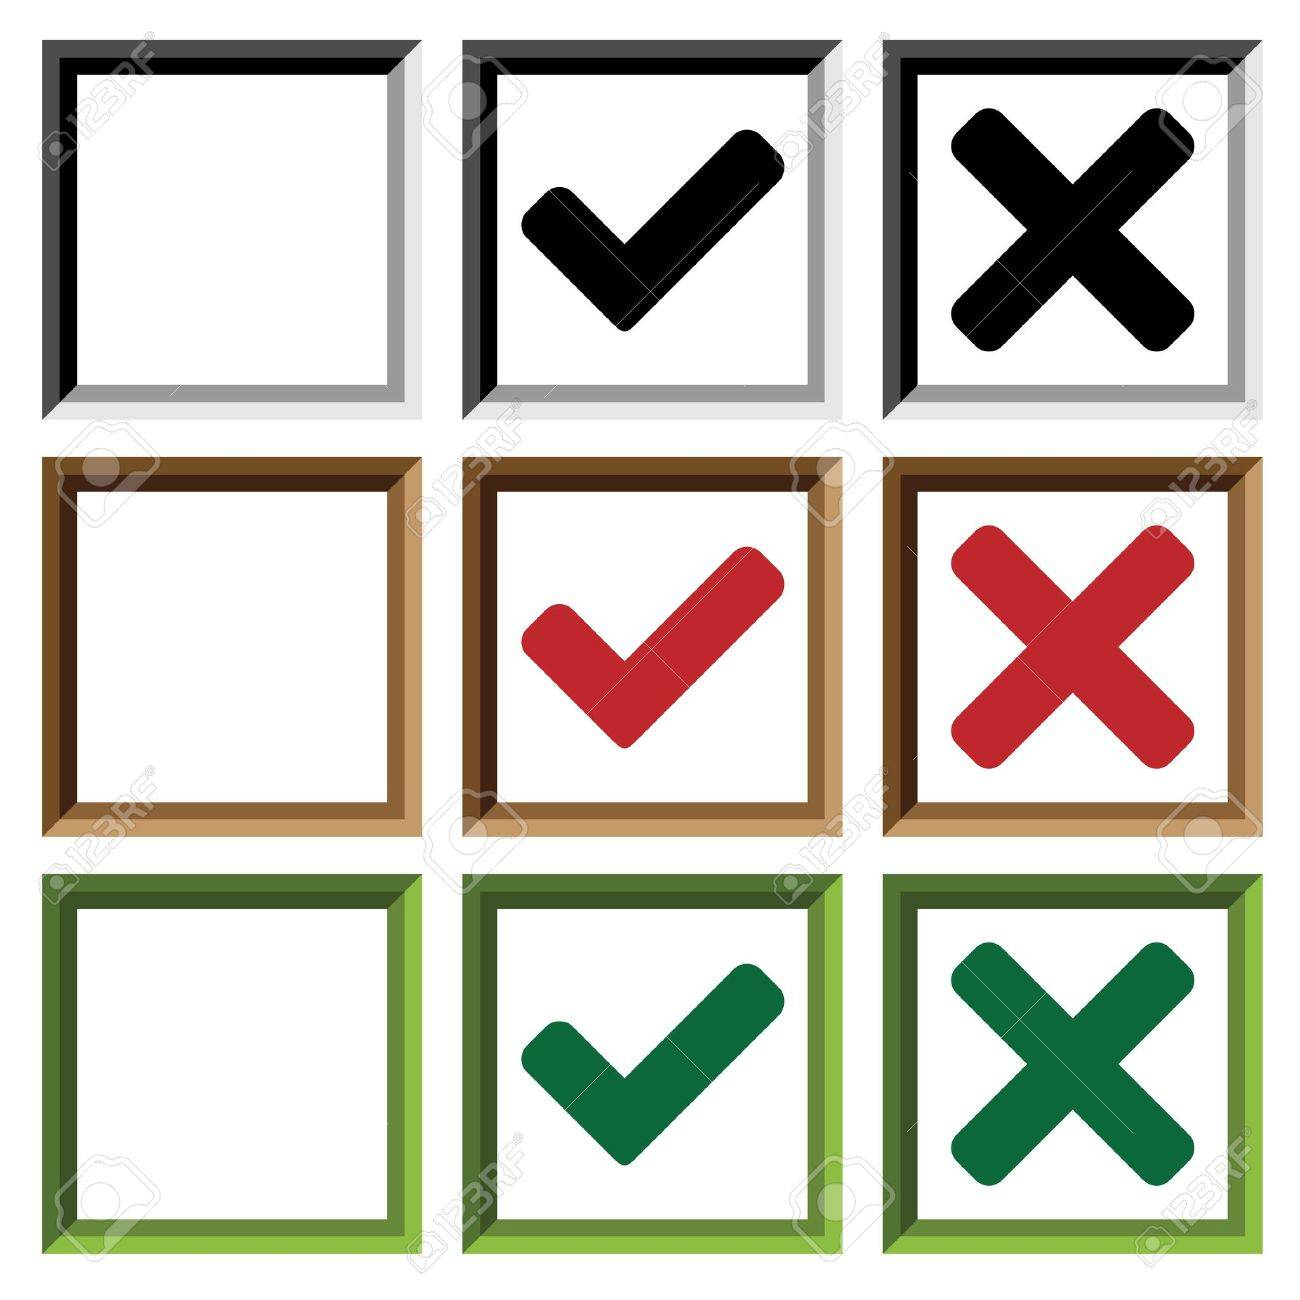 21,447 Checkbox Cliparts, Stock Vector And Royalty Free Checkbox ...